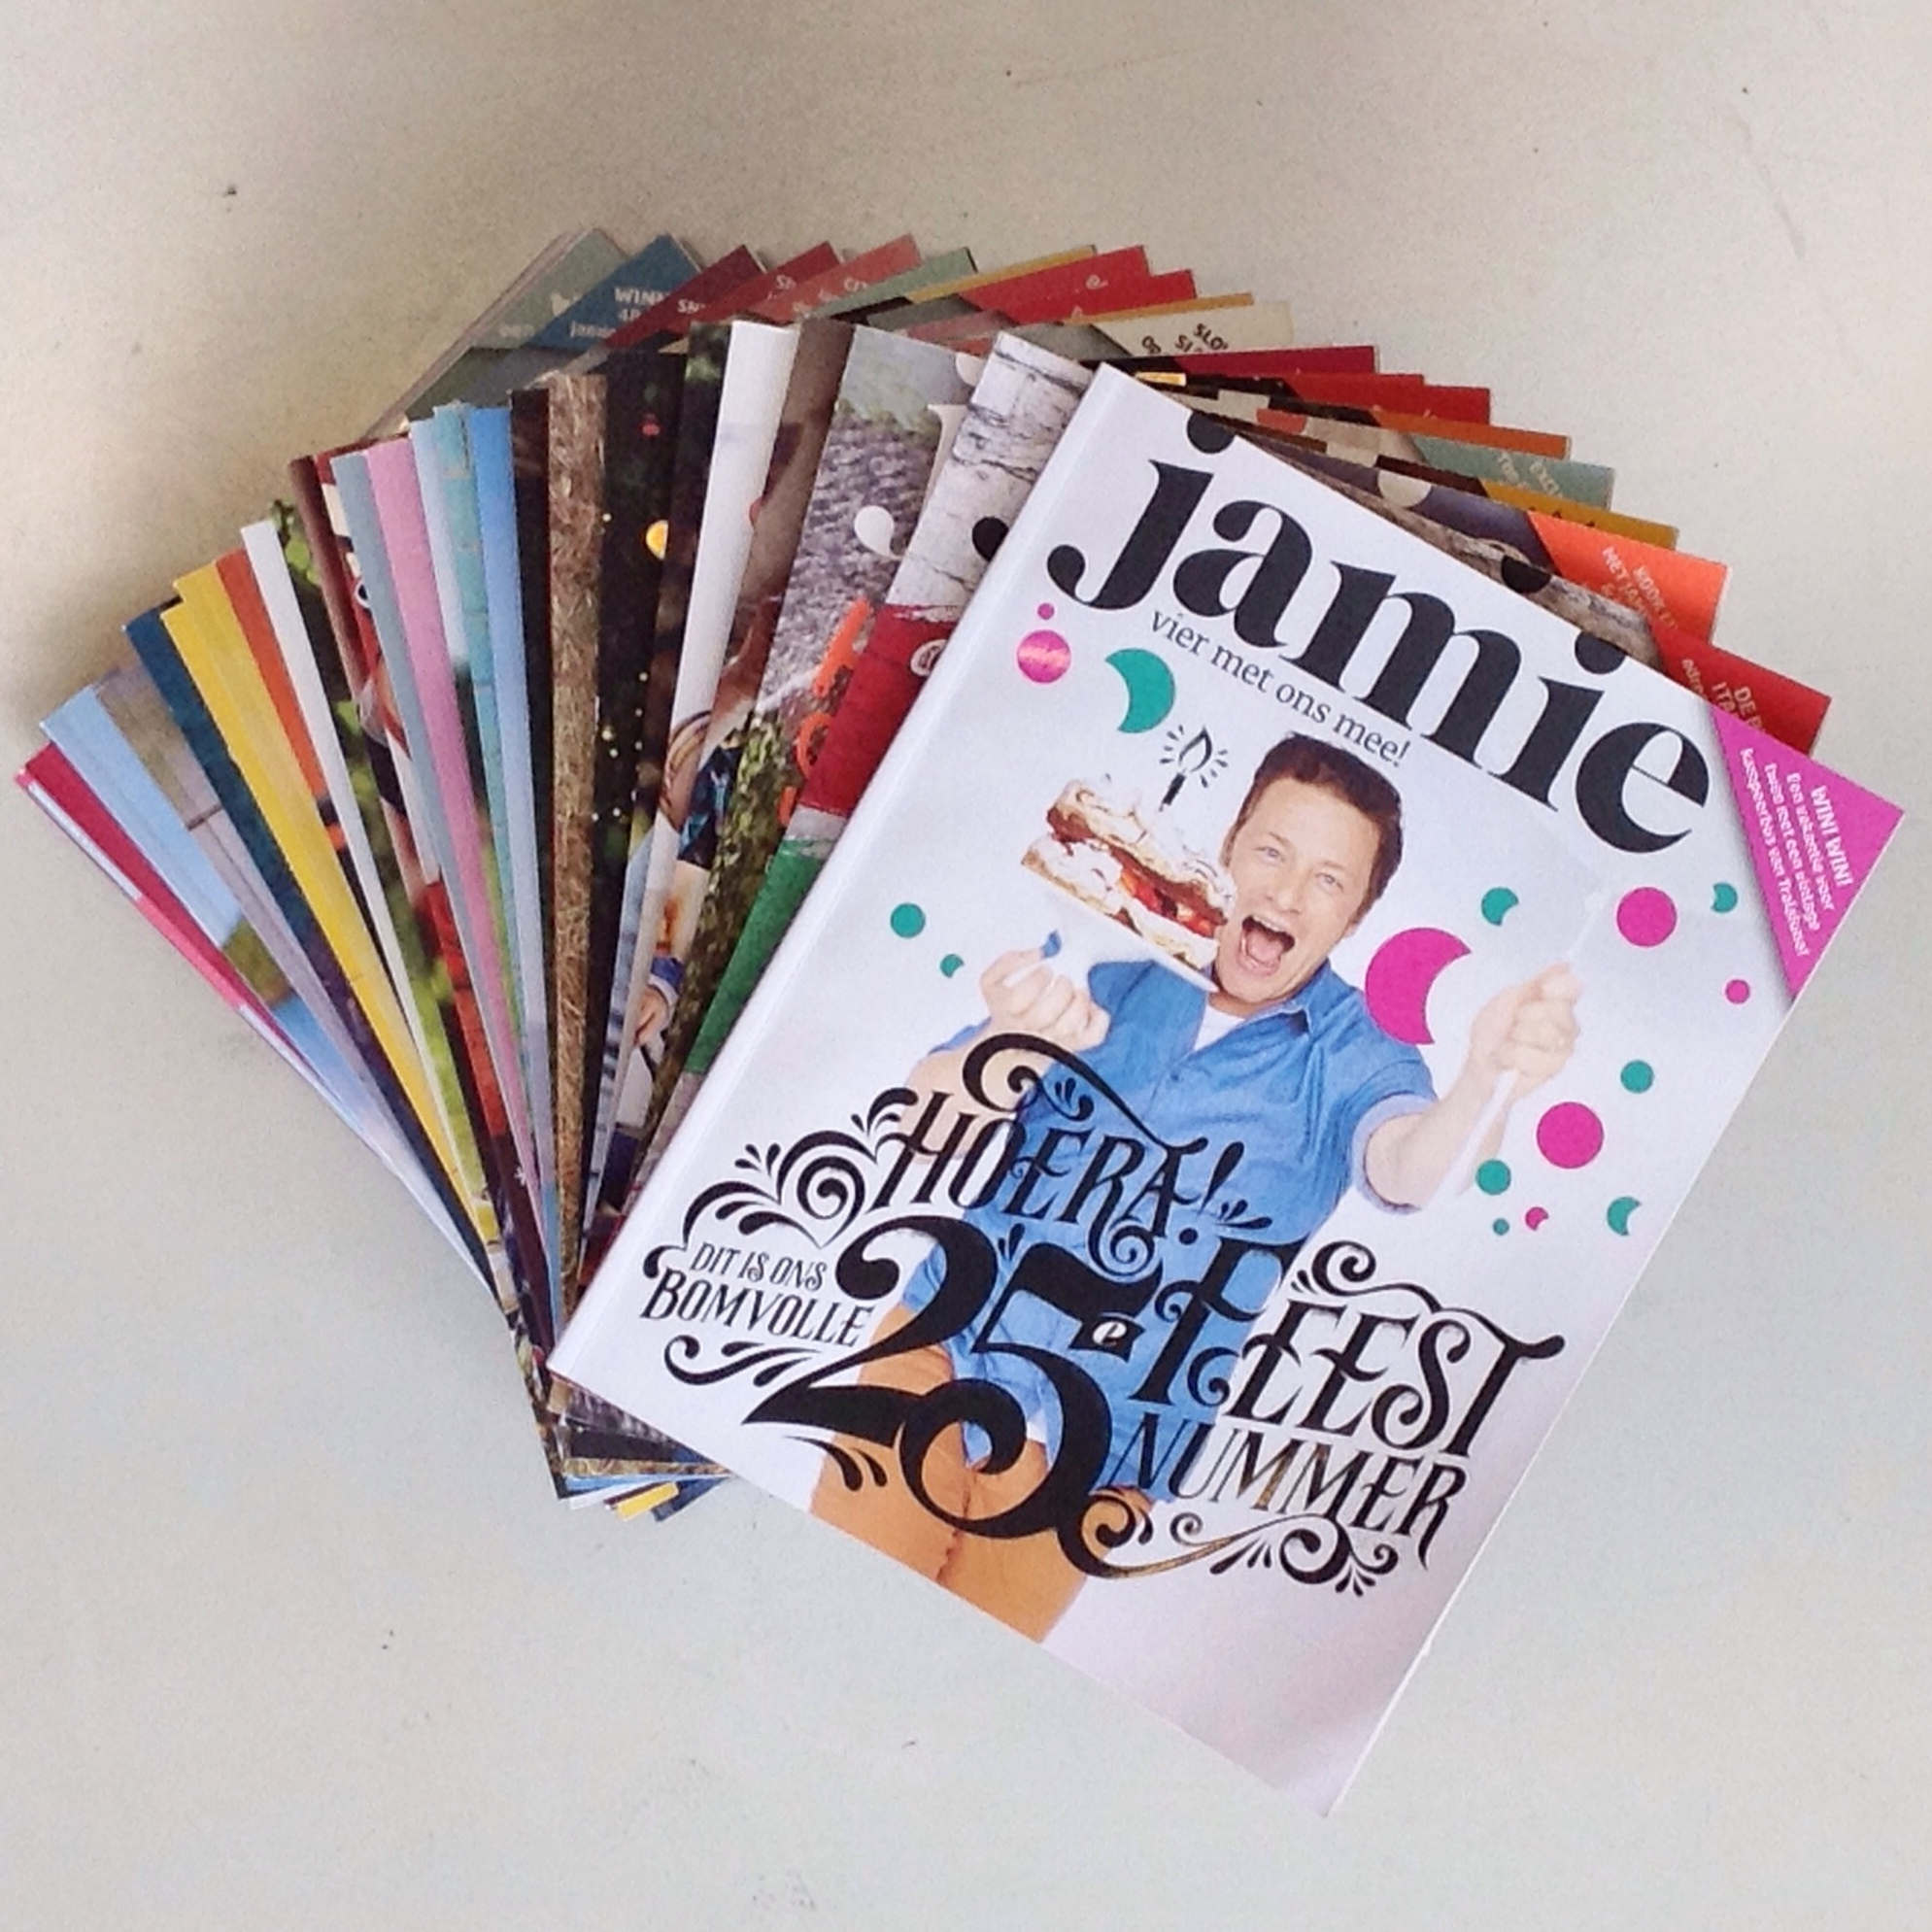 Win! Jamie Magazine celebrates its 25th issue